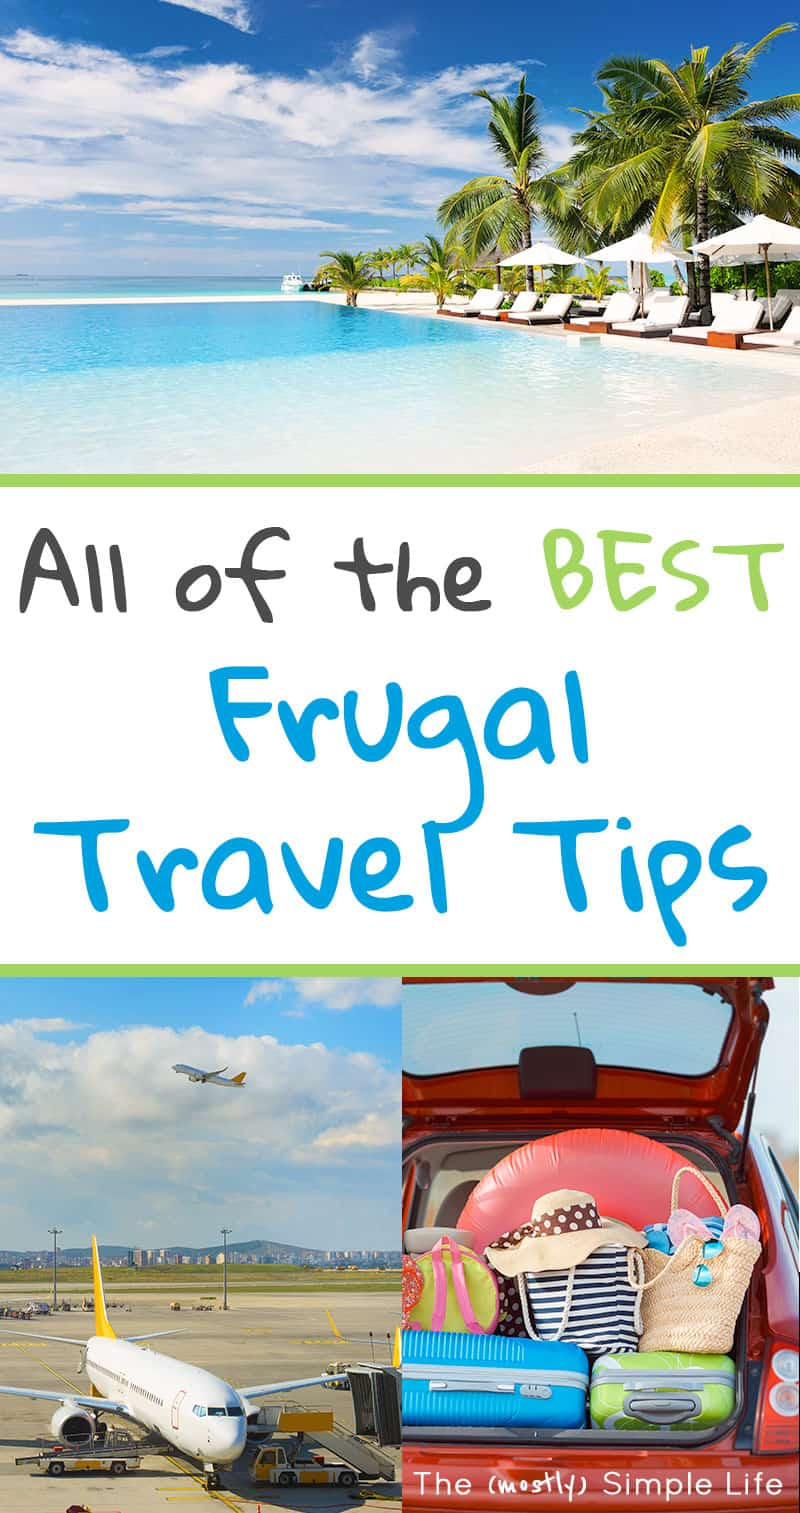 Awesome frugal traveling tips! All about family vacations, road trips, airline tickets and more on a budget! Loving these hacks for saving money. It's giving me ideas for Europe :) #travel #frugalliving #travelhacks #traveling #vacation #familyvacation #onabudget #frugaltravel